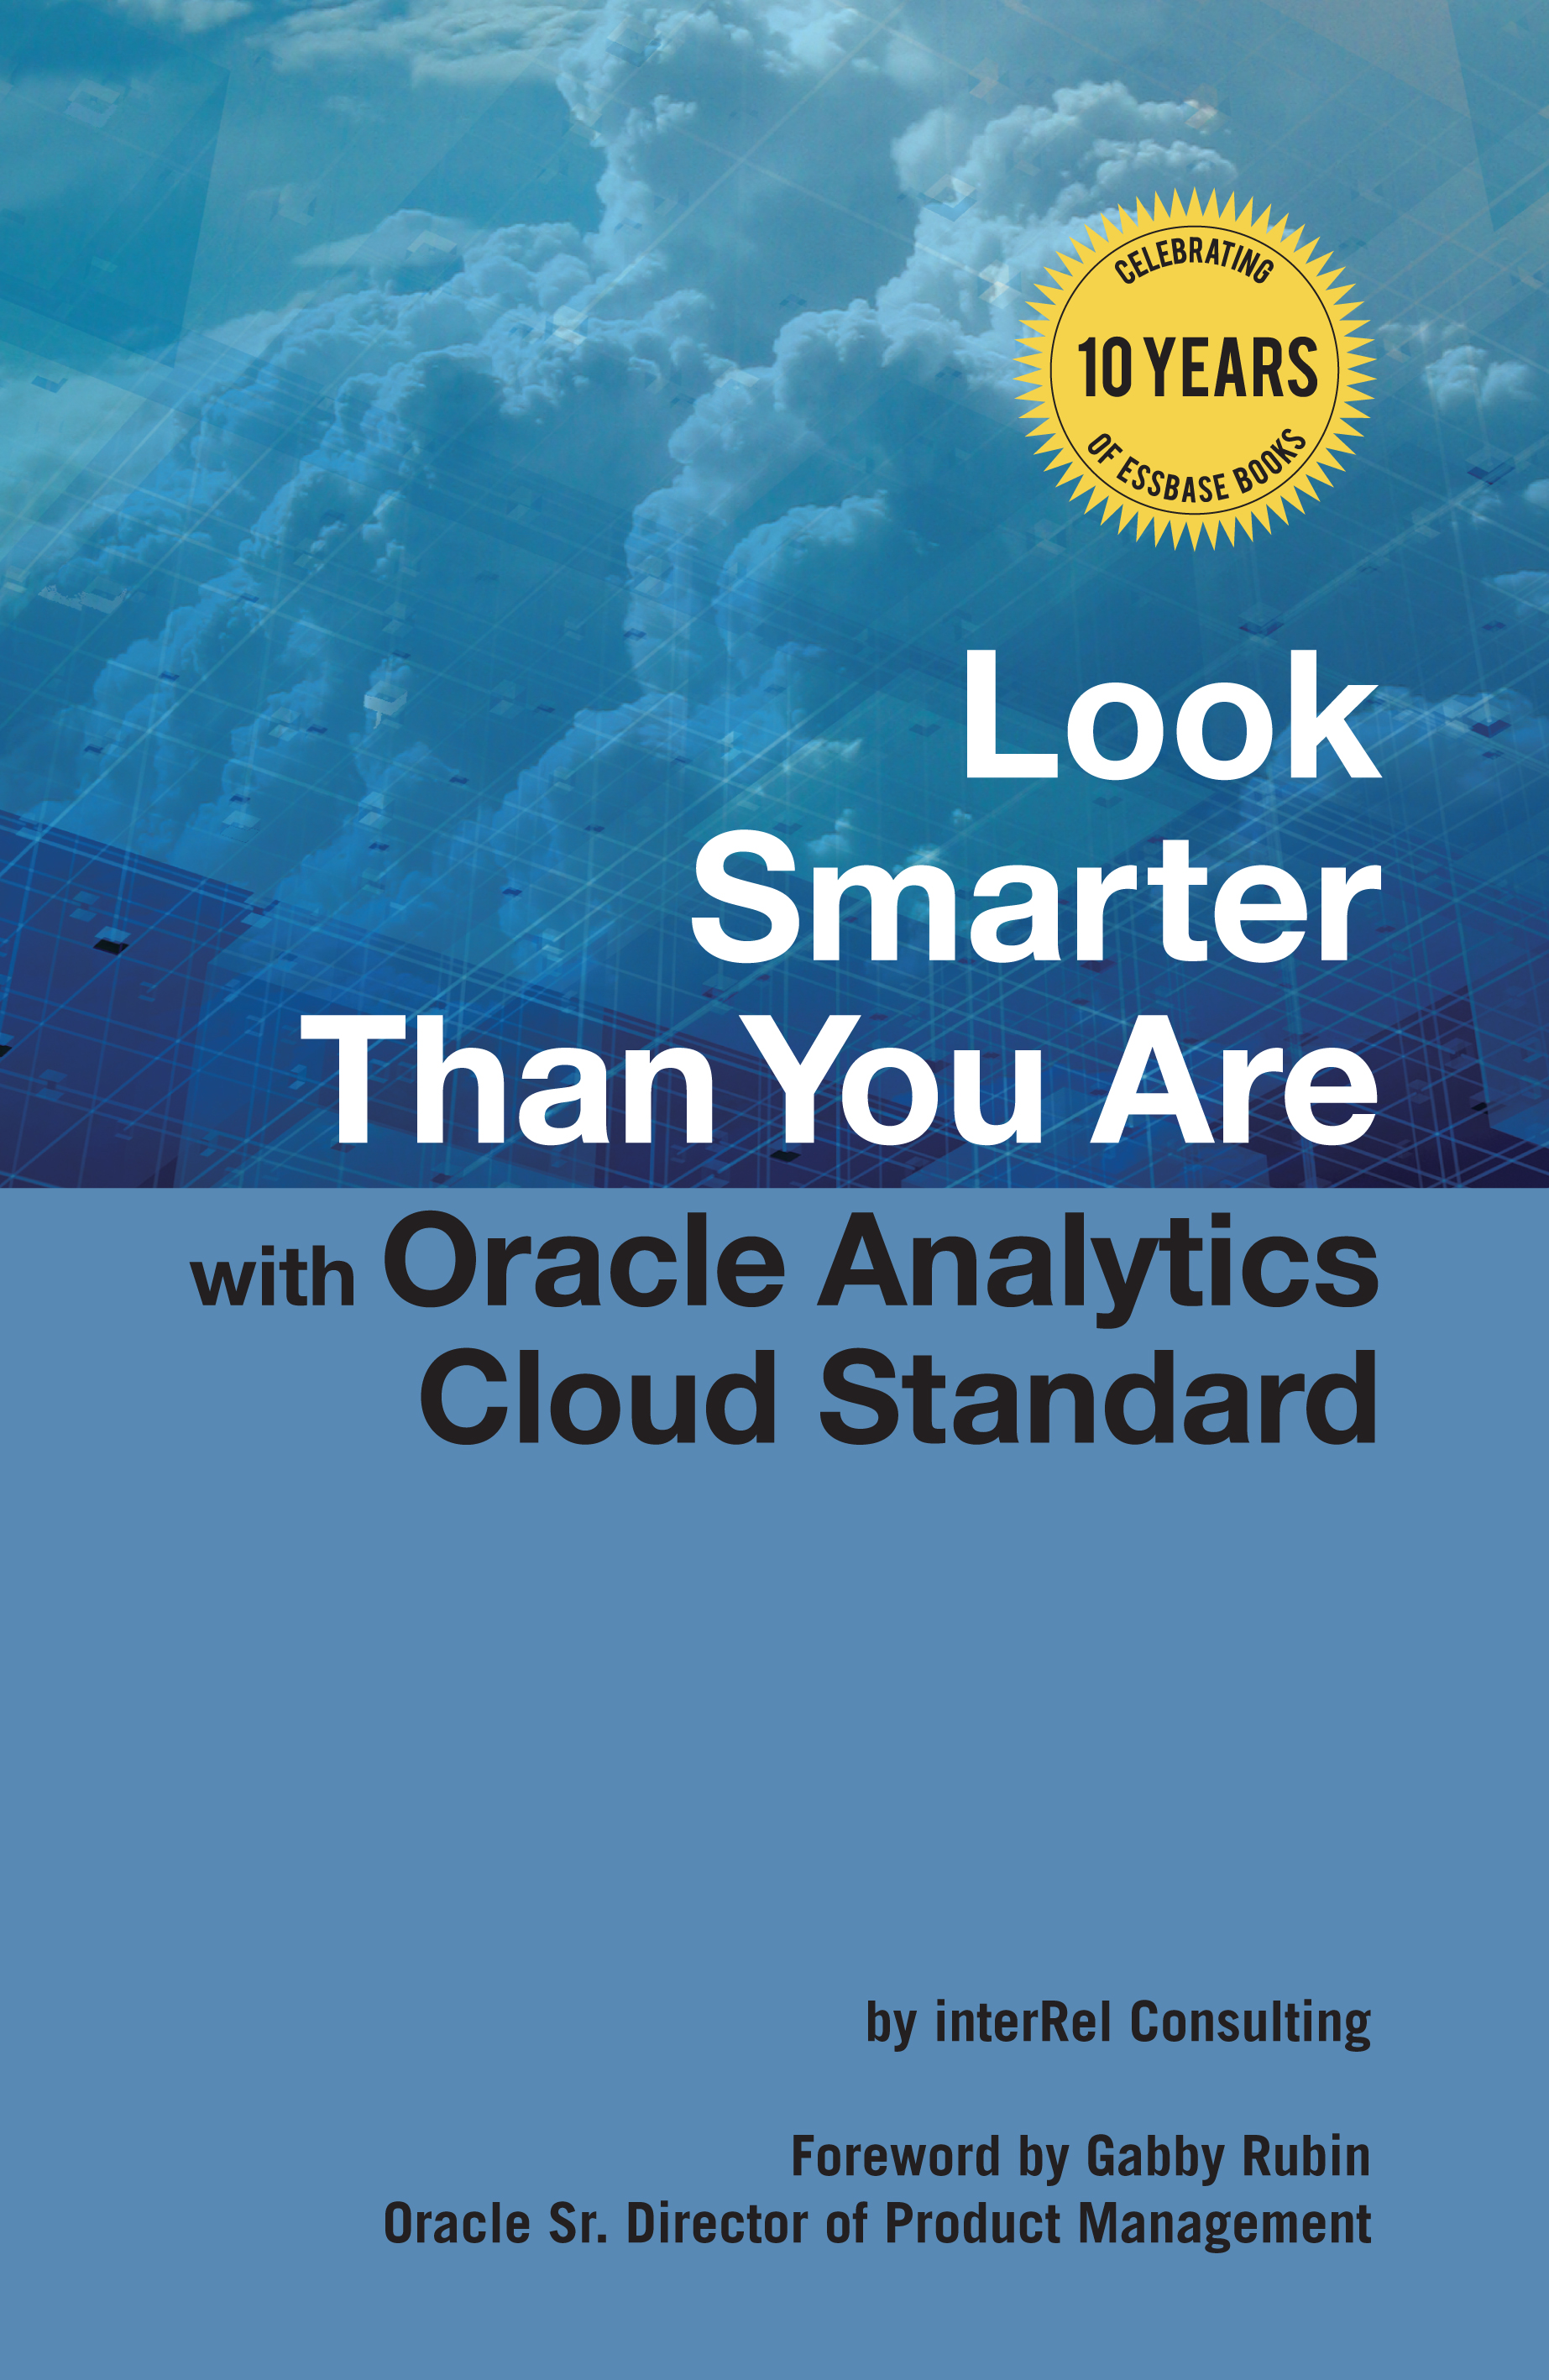 Oracle Analytics Cloud Standard